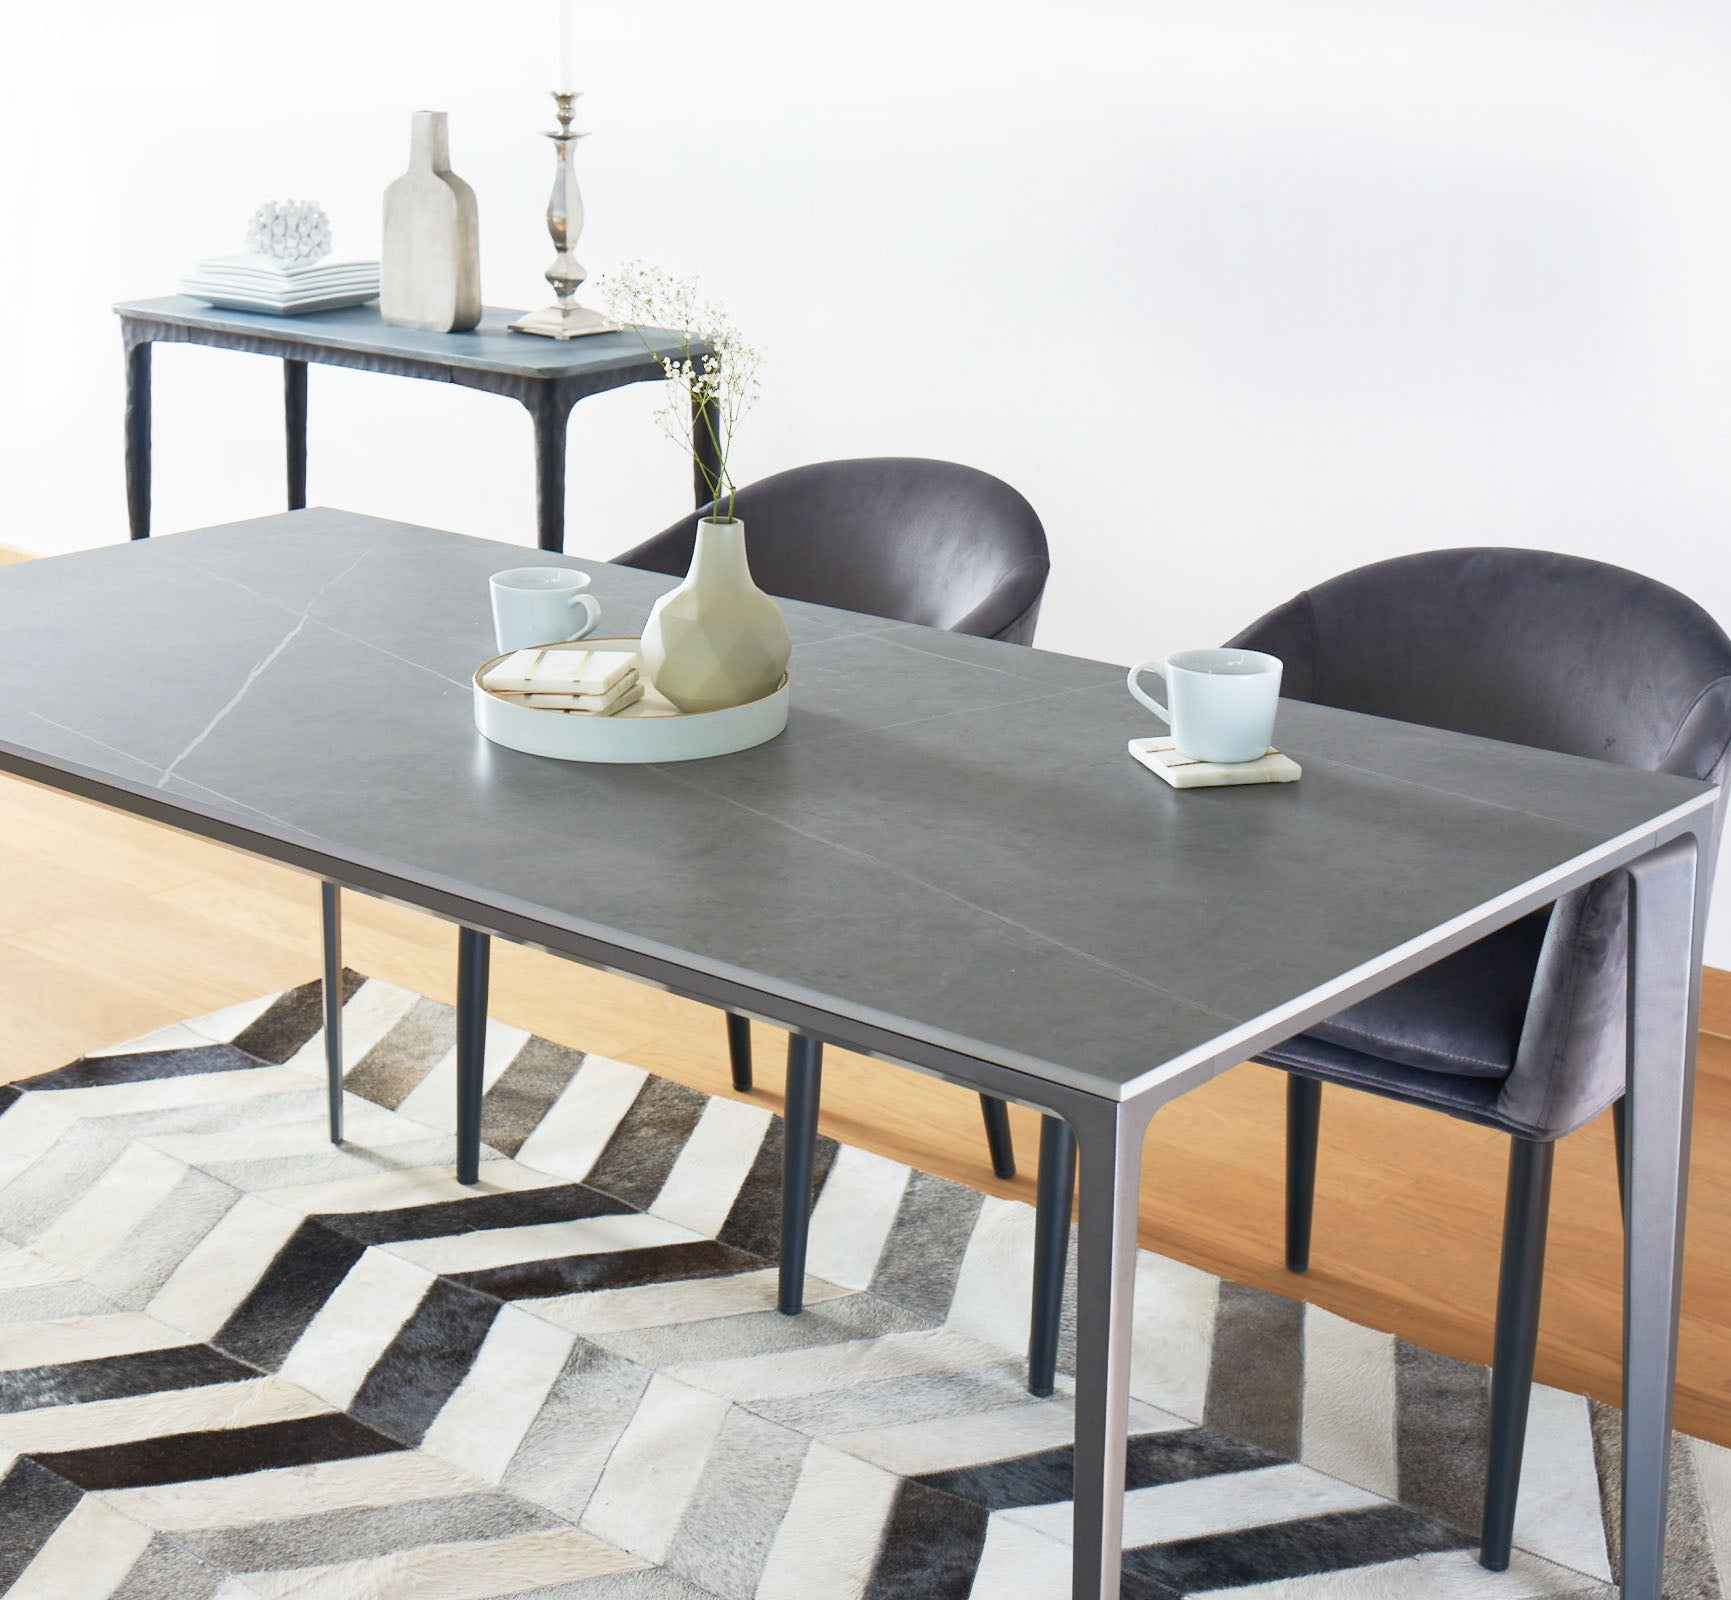 Alexis Sintered Stone Table Buy Dining Table Singapore Nookandcranny Nook And Cranny